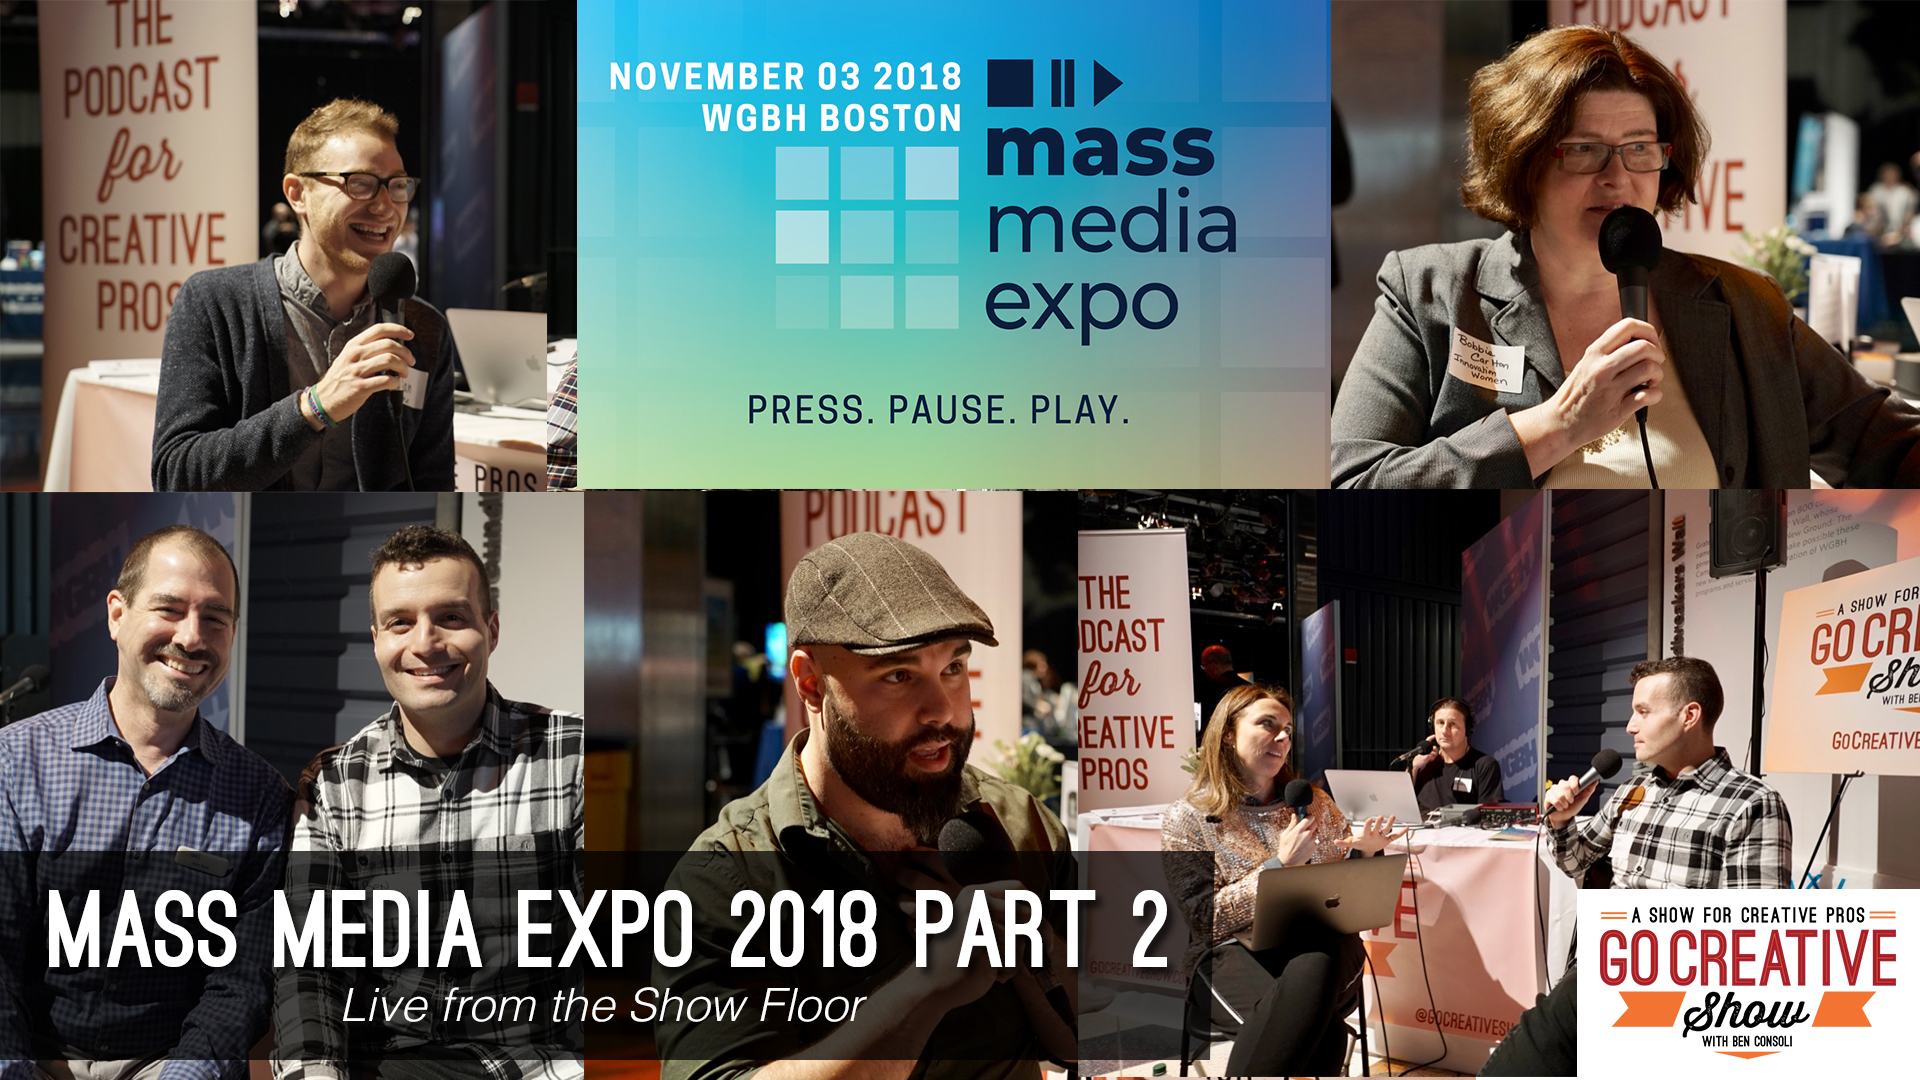 Go Creative Show with Ben Consoli at Mass Media Expo 2018